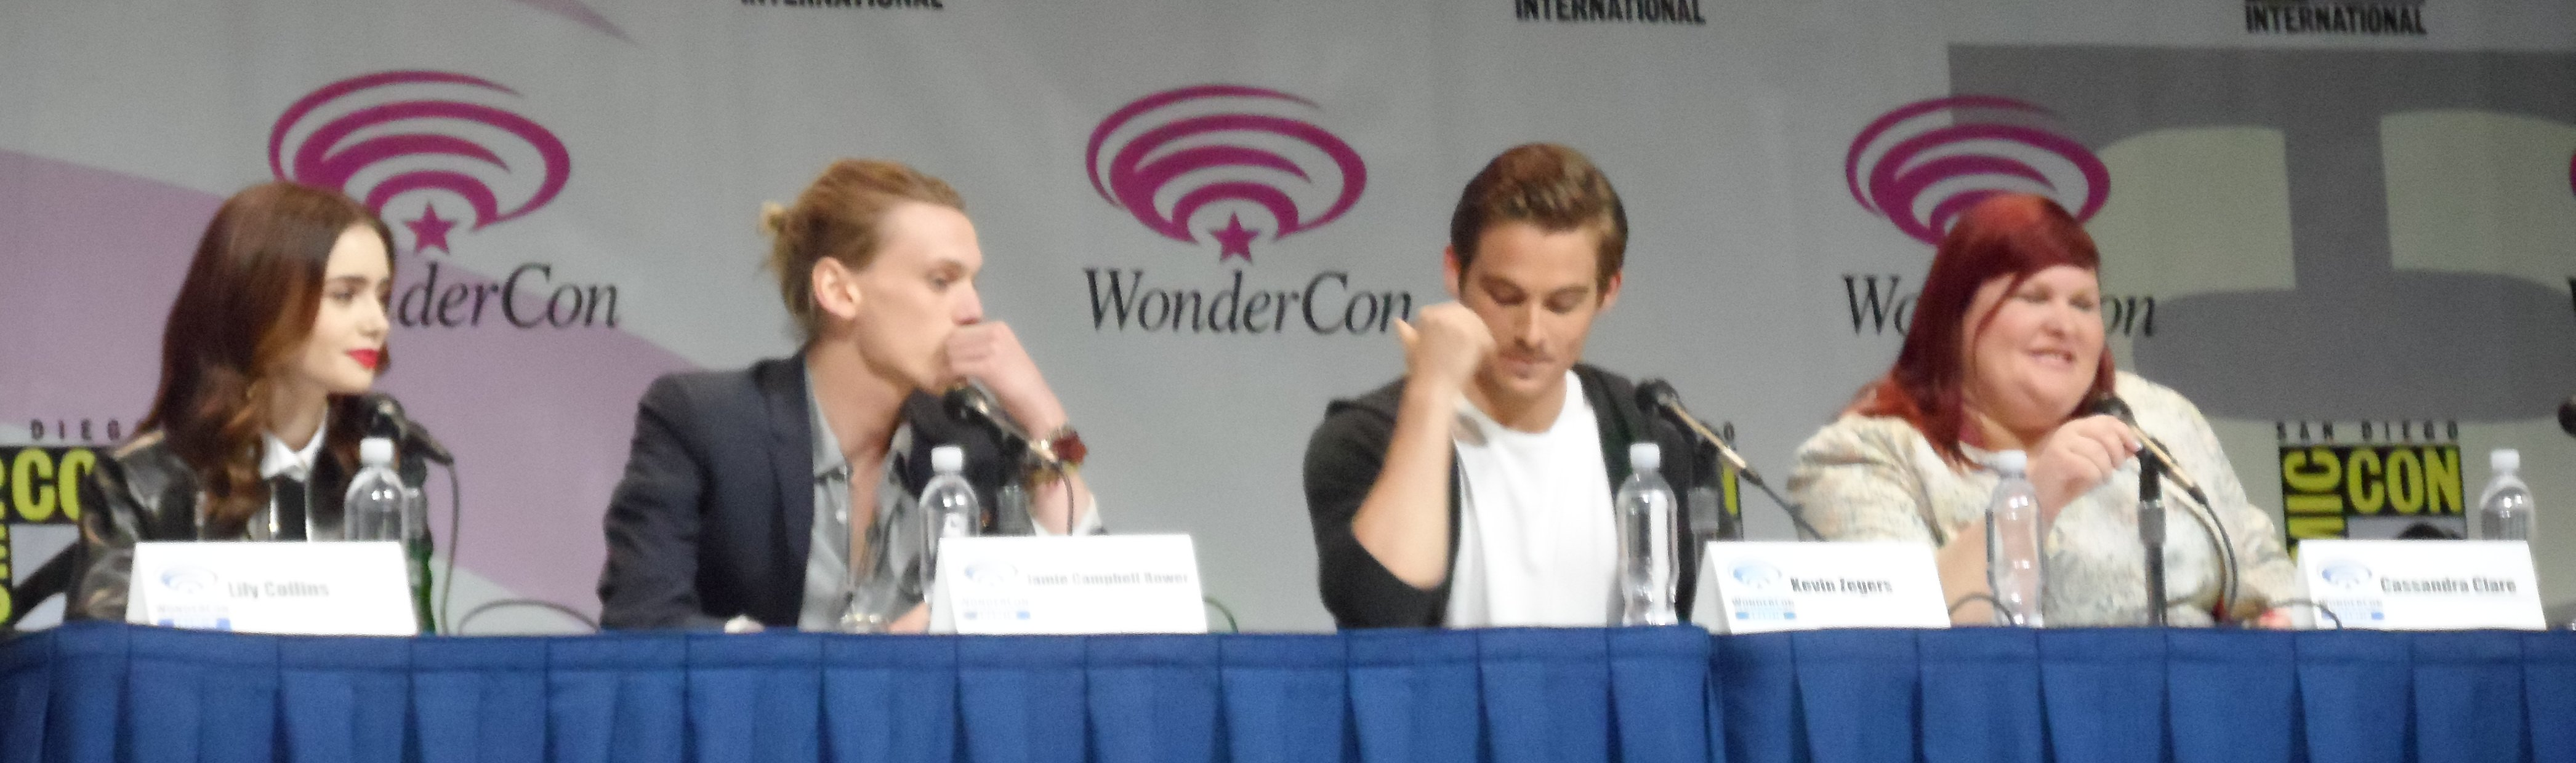 Wondercon, Lily Collins, Jamie Campbell Bower, Kevin Zegers, Cassandra Clare, Mortal Instruments: City of Bones